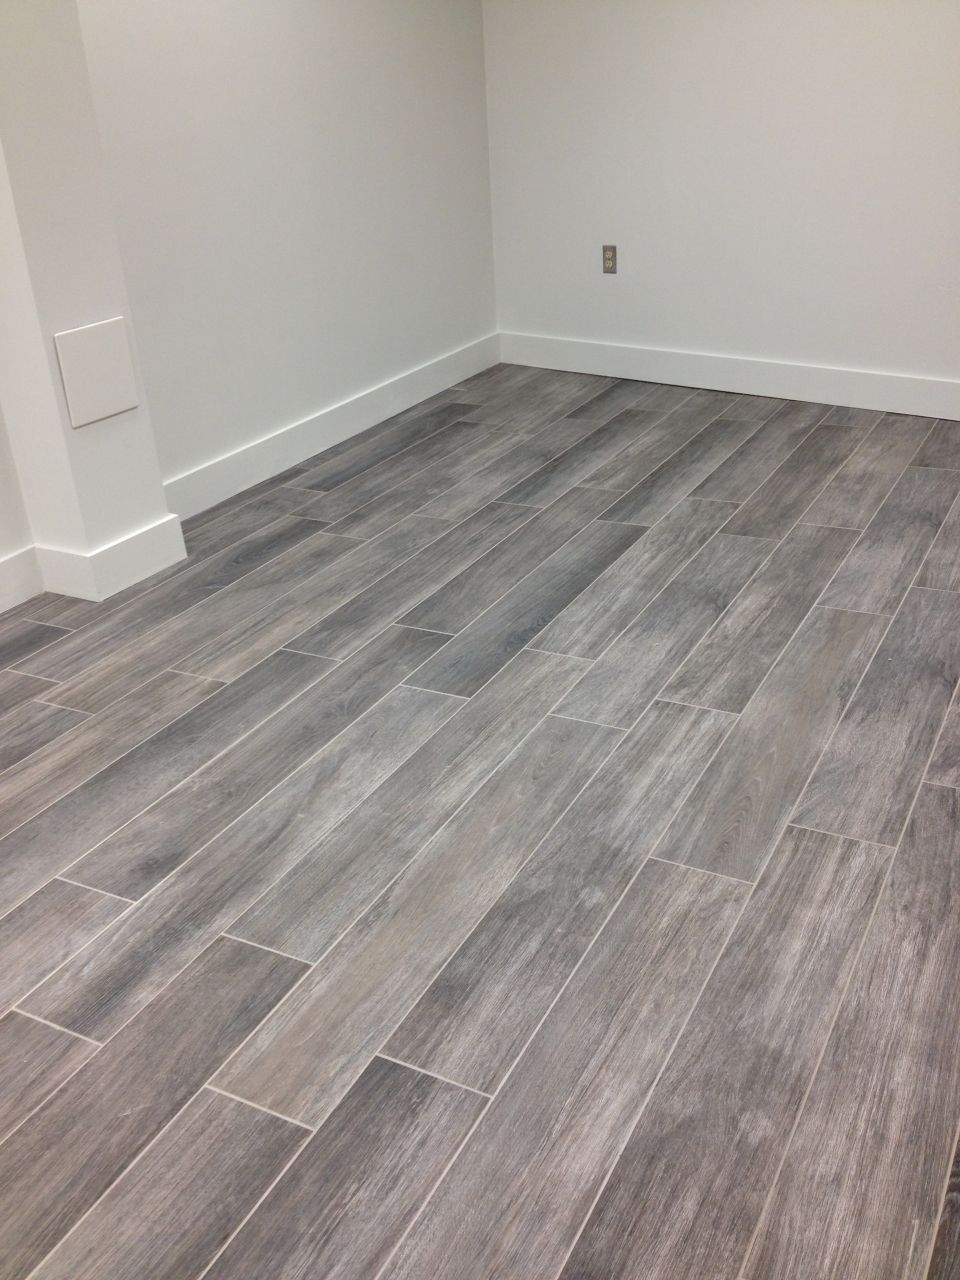 gray wood tile floor nO3lcD6n8  Awesome  Grey wood tile